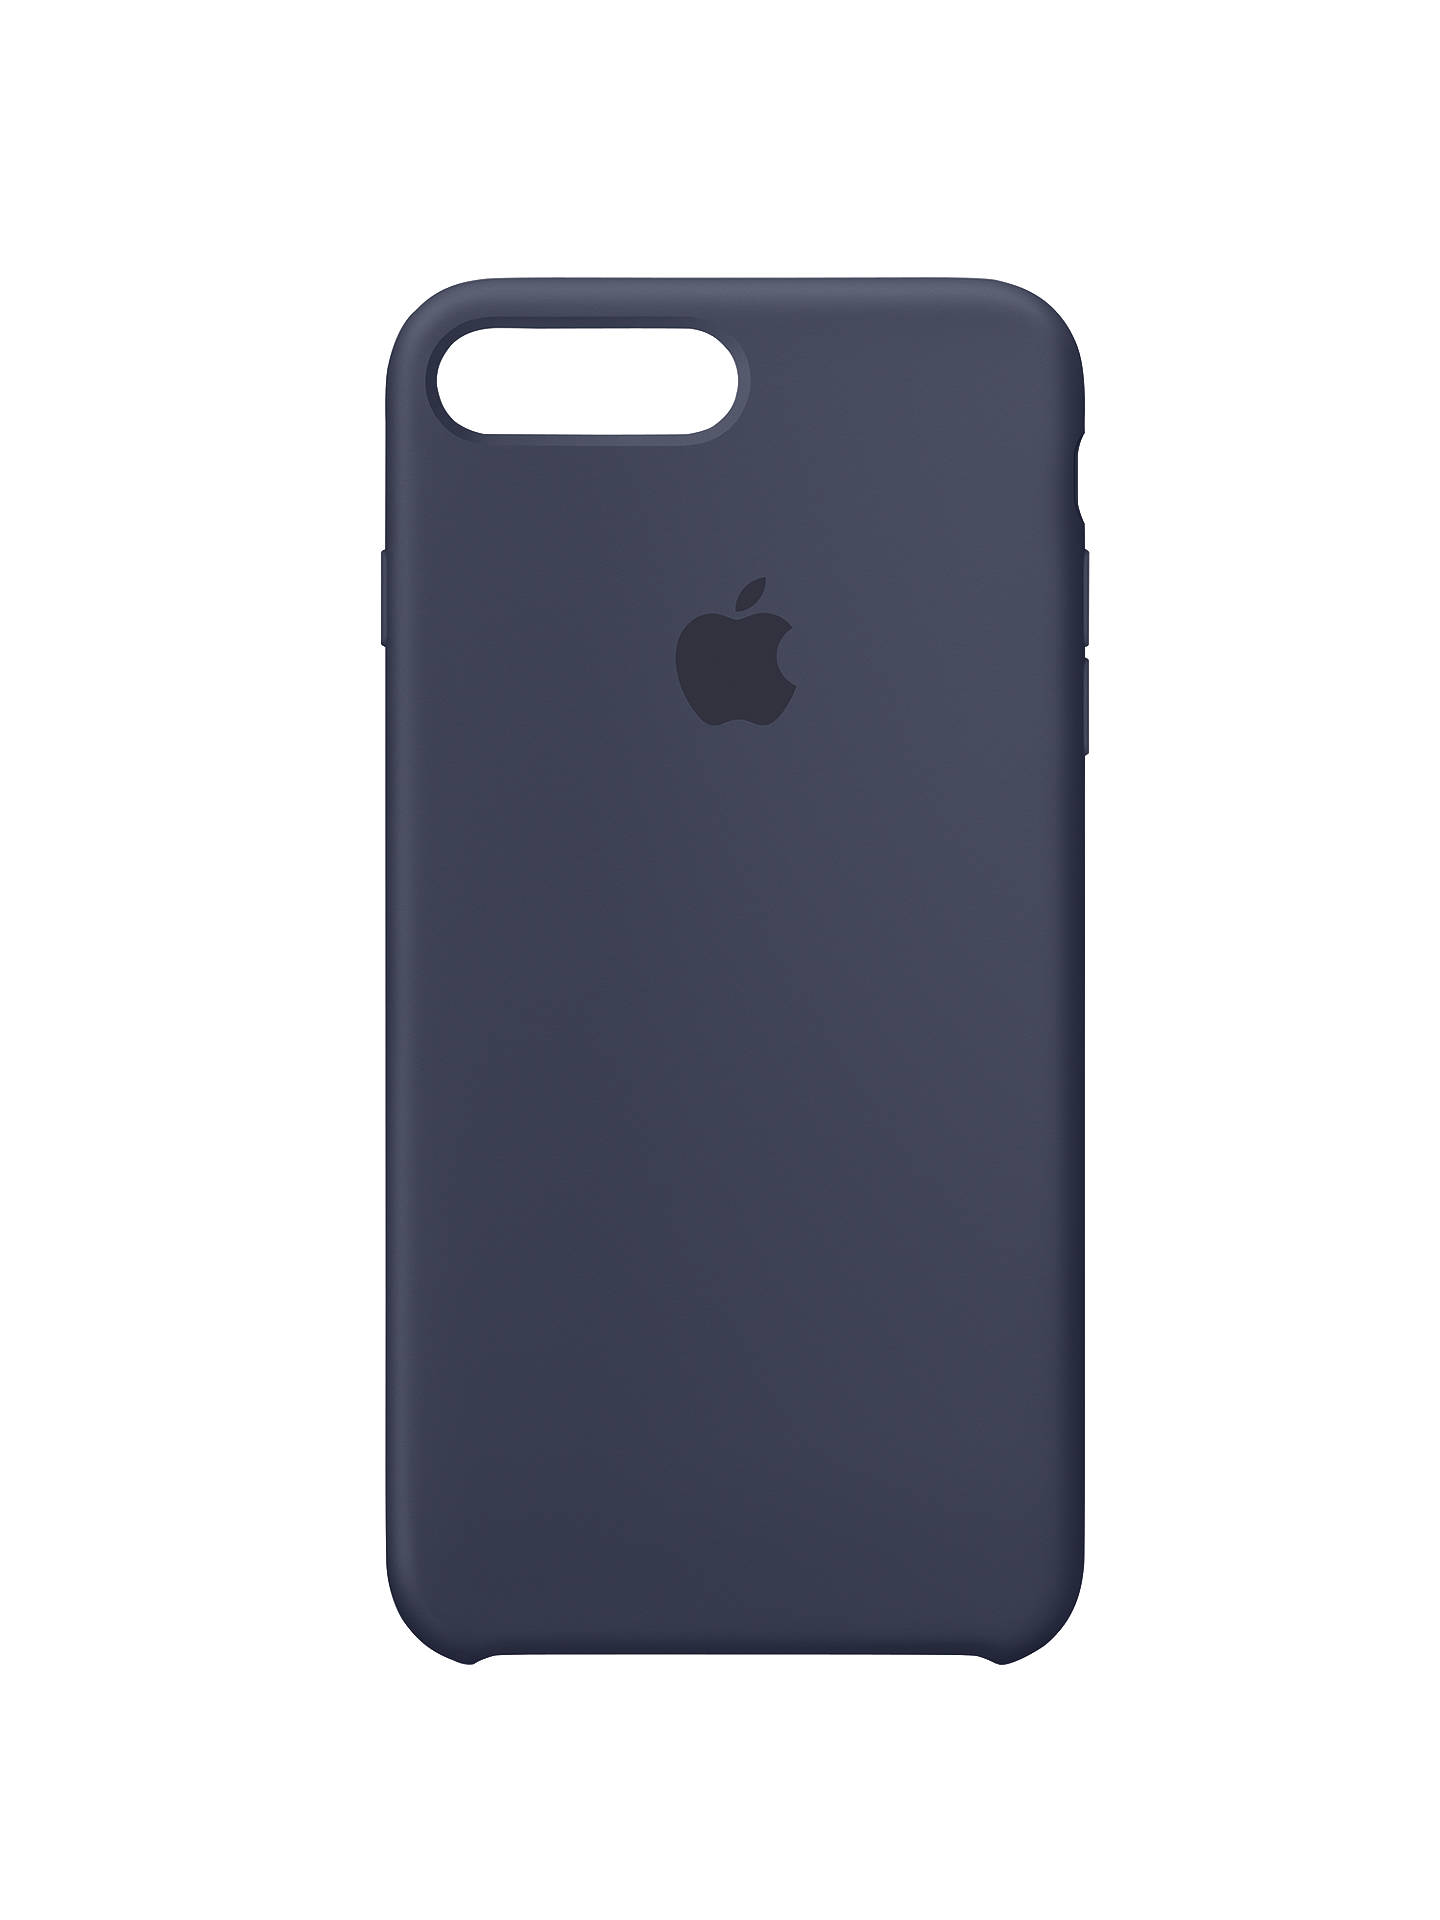 7f8a29c9a5 Buy Apple Silicone Case for iPhone 7 Plus, Midnight Blue Online at  johnlewis.com